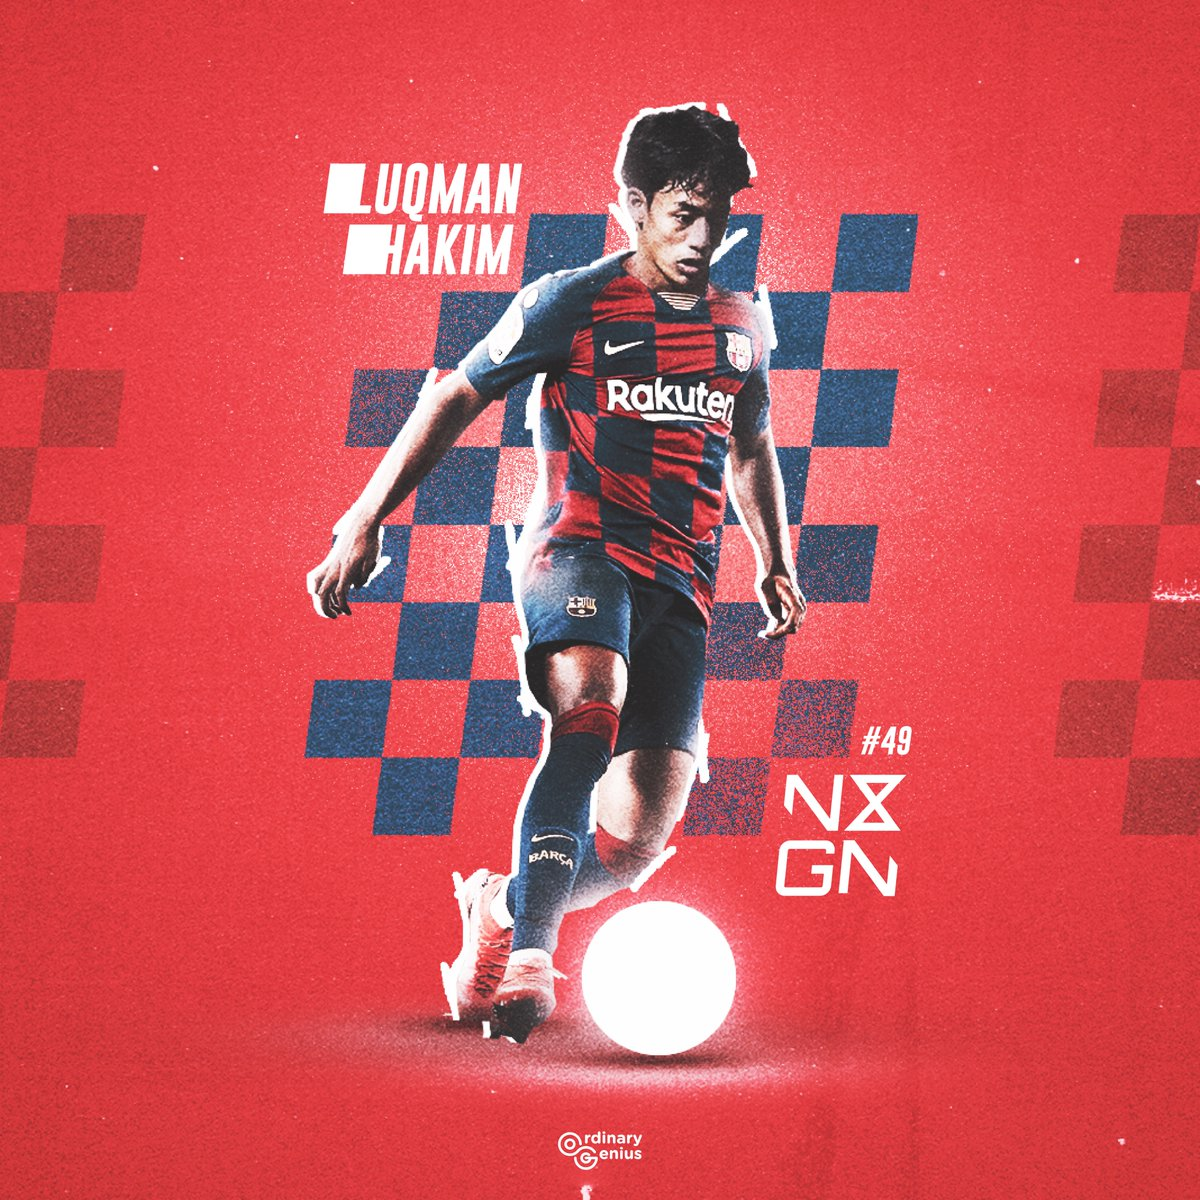 Another milestone for Luqman Hakim, listed in the NxGn 2020 50 best wonderkids.  Decided to do this #kitswap because to be the best you gotta join the best and Barca is one of em.  Congrats @luqisham10 !  RTs and Likes are much appreciated!  #smsports #sportsedits #NxGn2020pic.twitter.com/eVBLHVW3rl